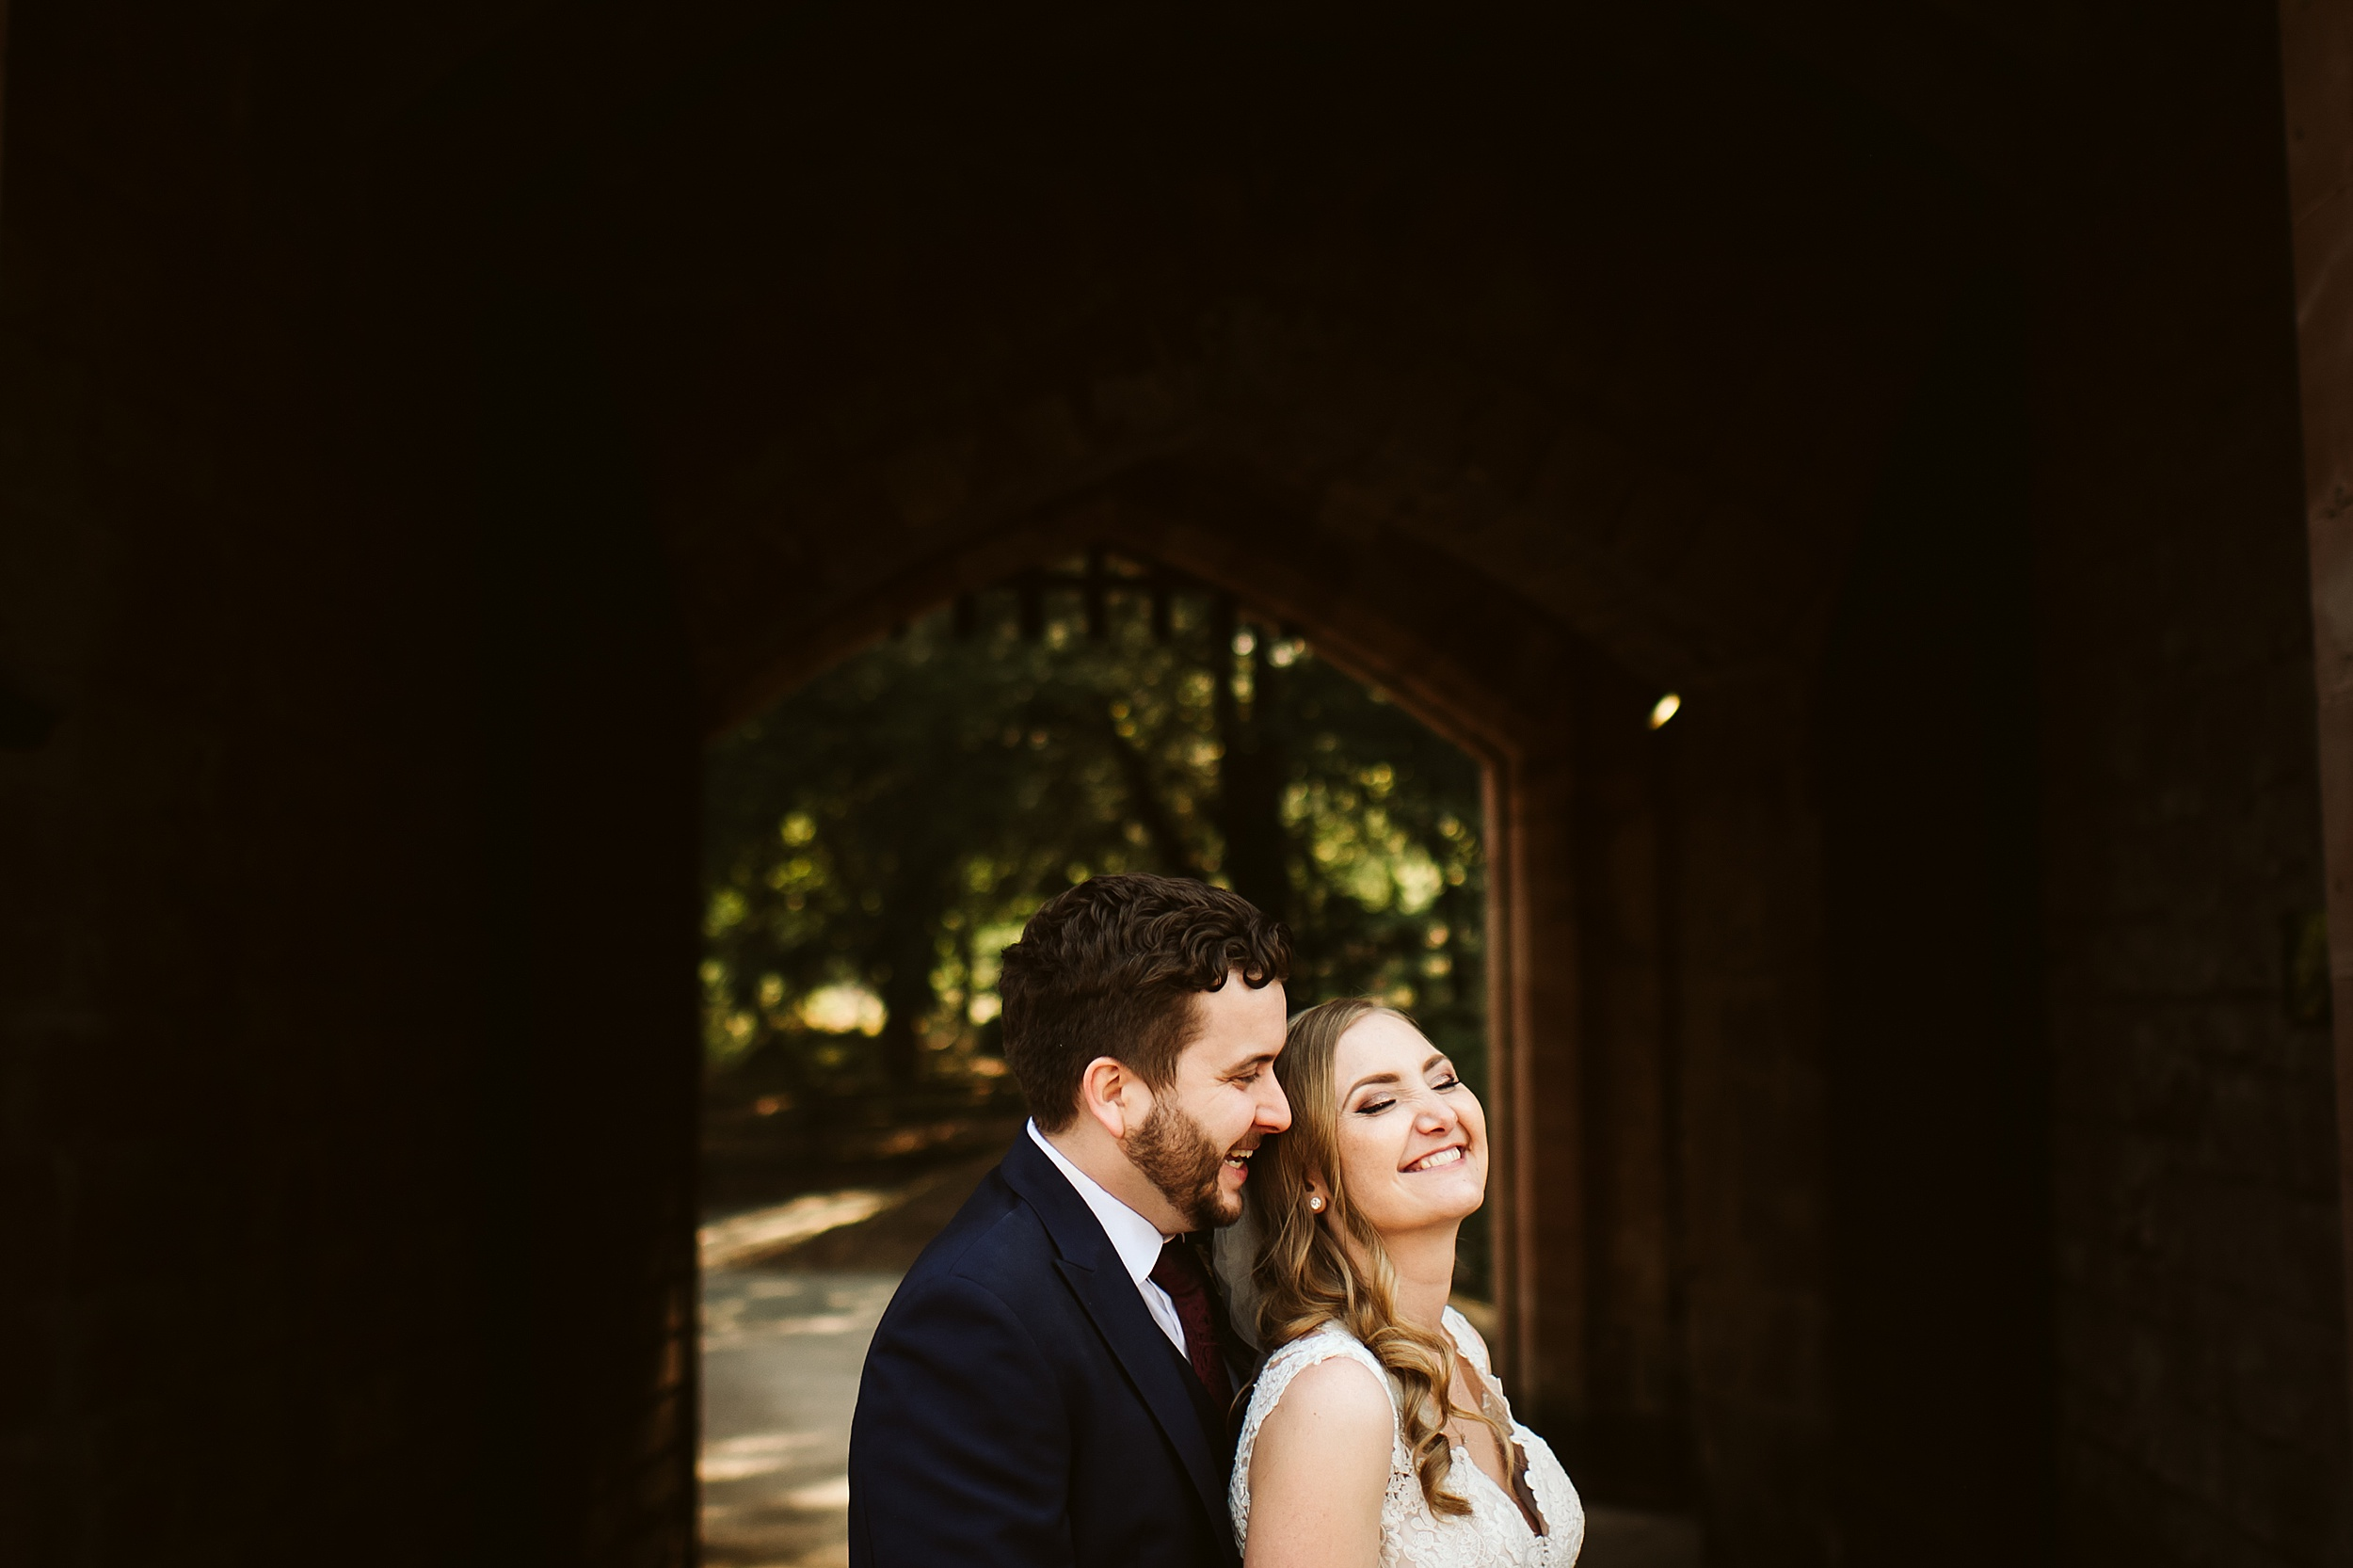 Peckforton_Castle_Cheshire_Toronto_Wedding_Photographer_UK_Destination_Wedding_0106.jpg